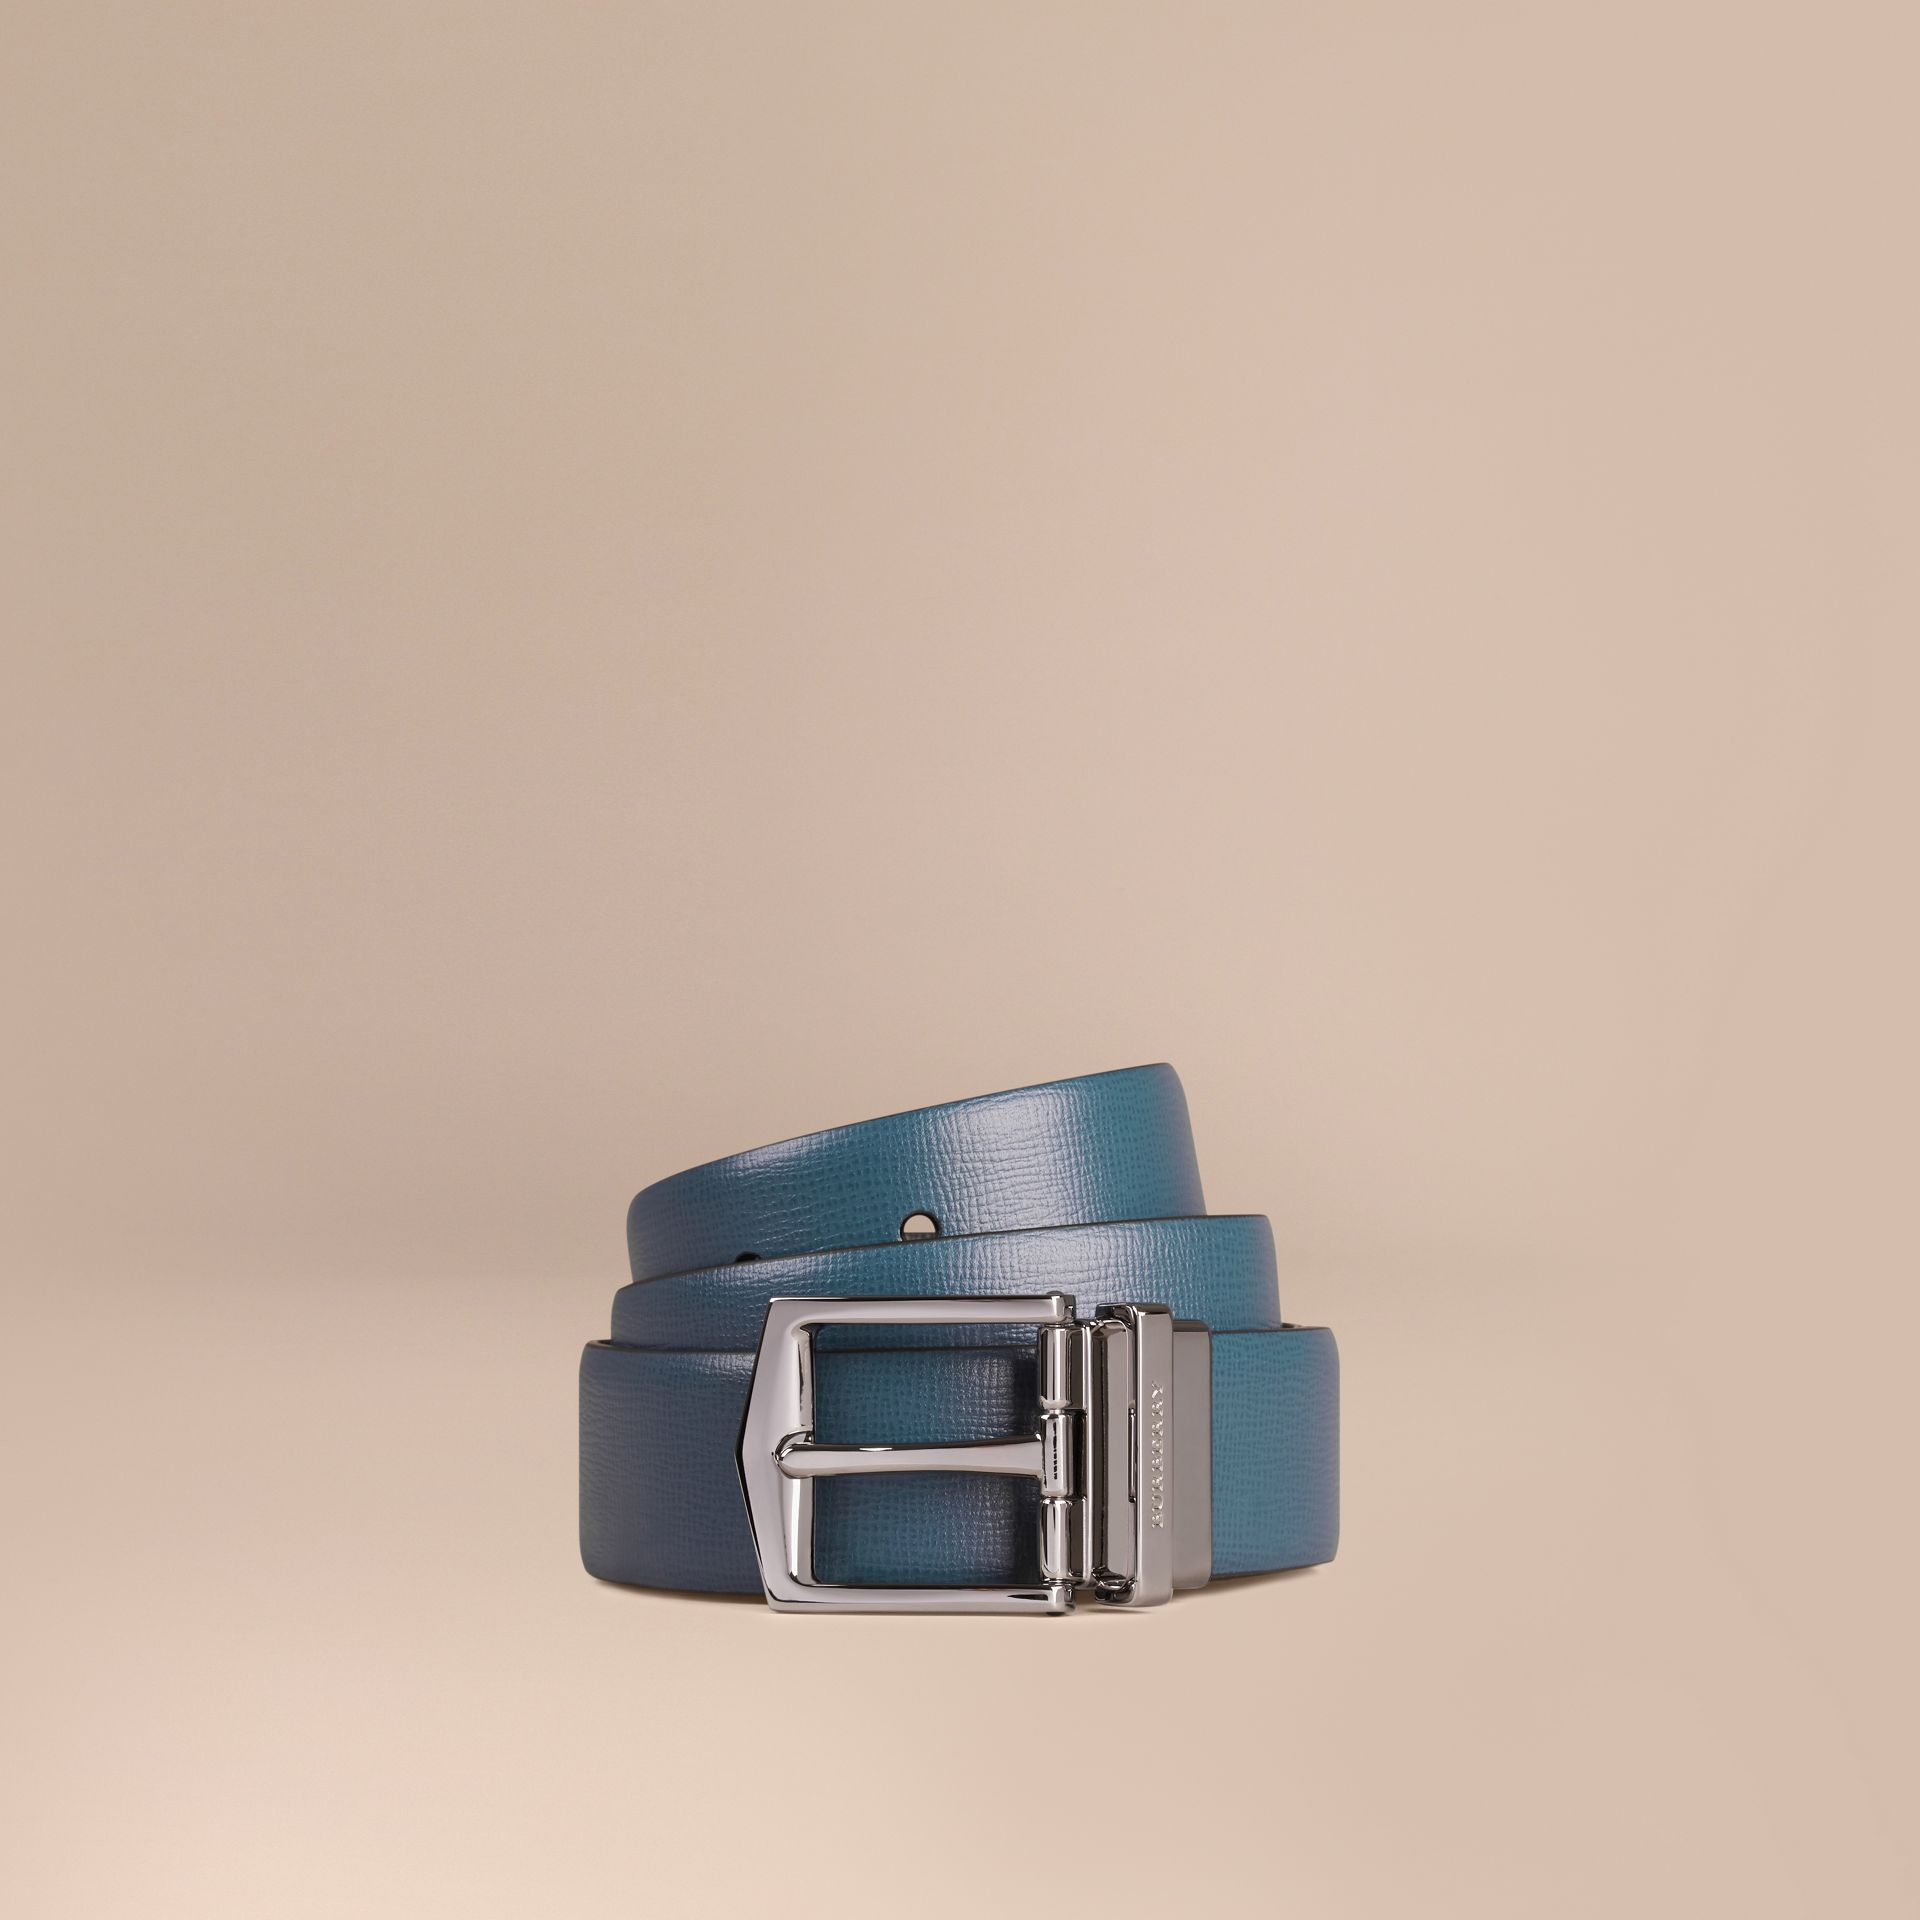 Mineral blue/black Reversible London Leather Belt Mineral Blue/black - gallery image 1